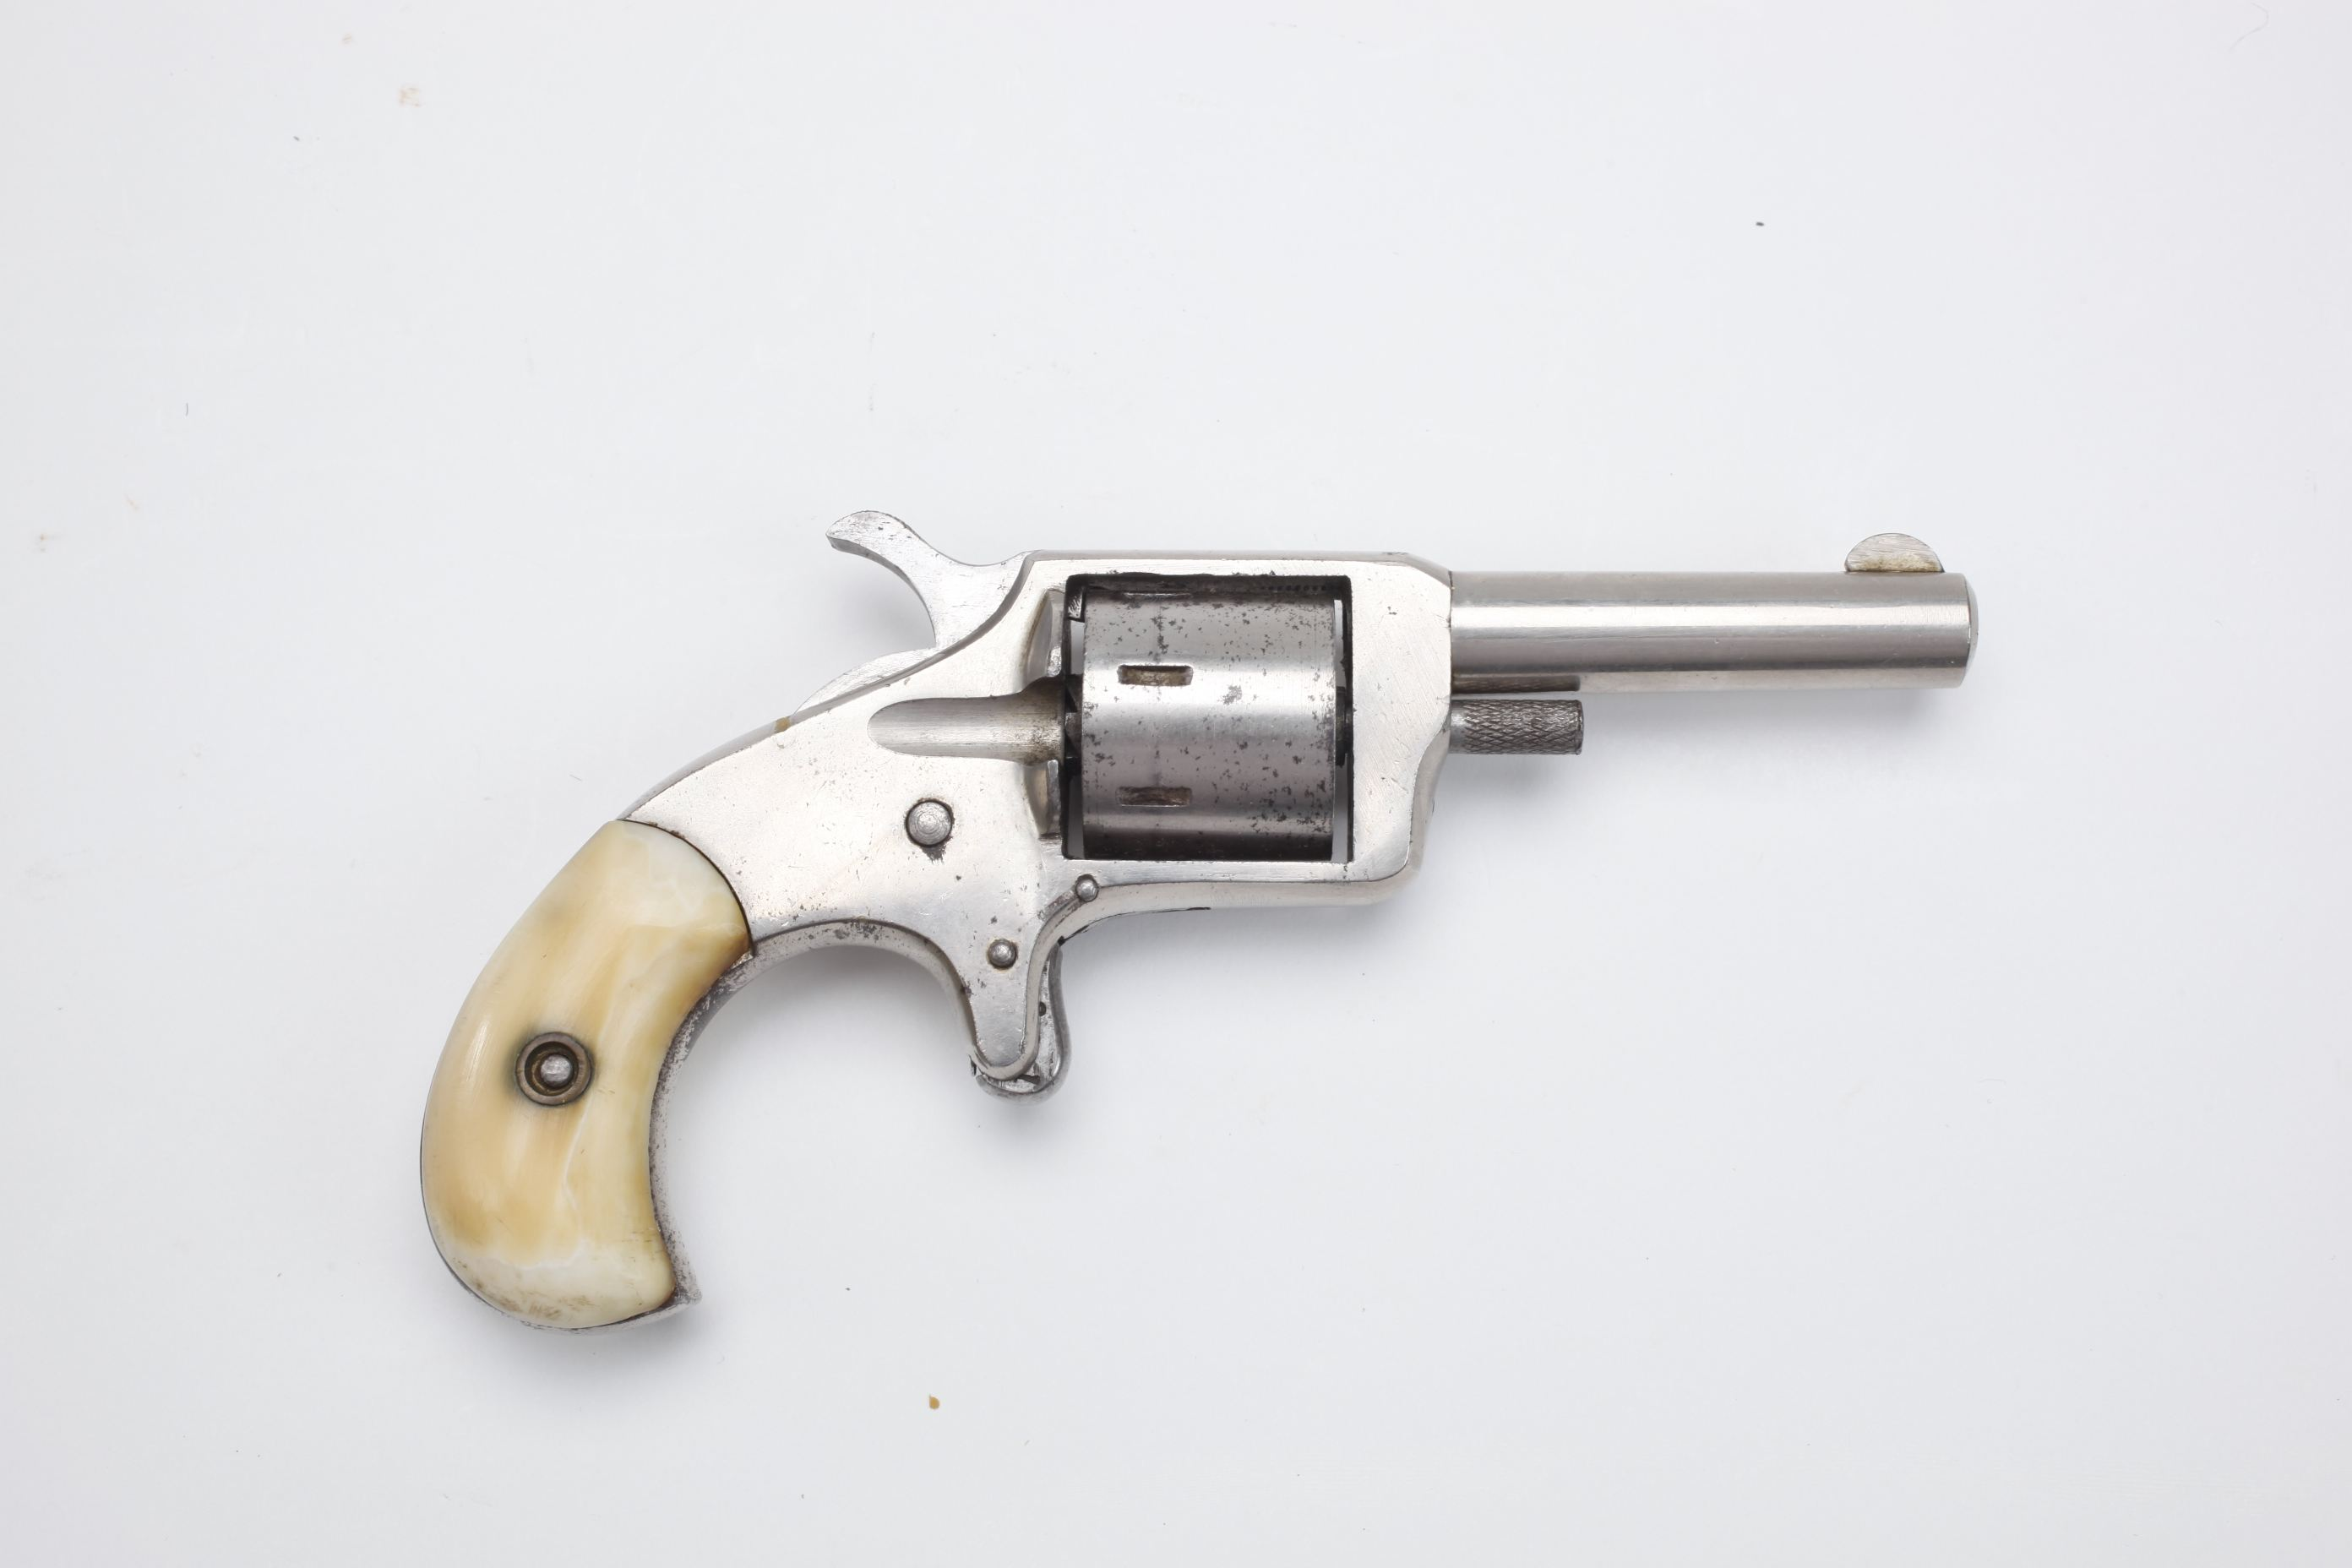 Scott Arms Co No. 3 revolver